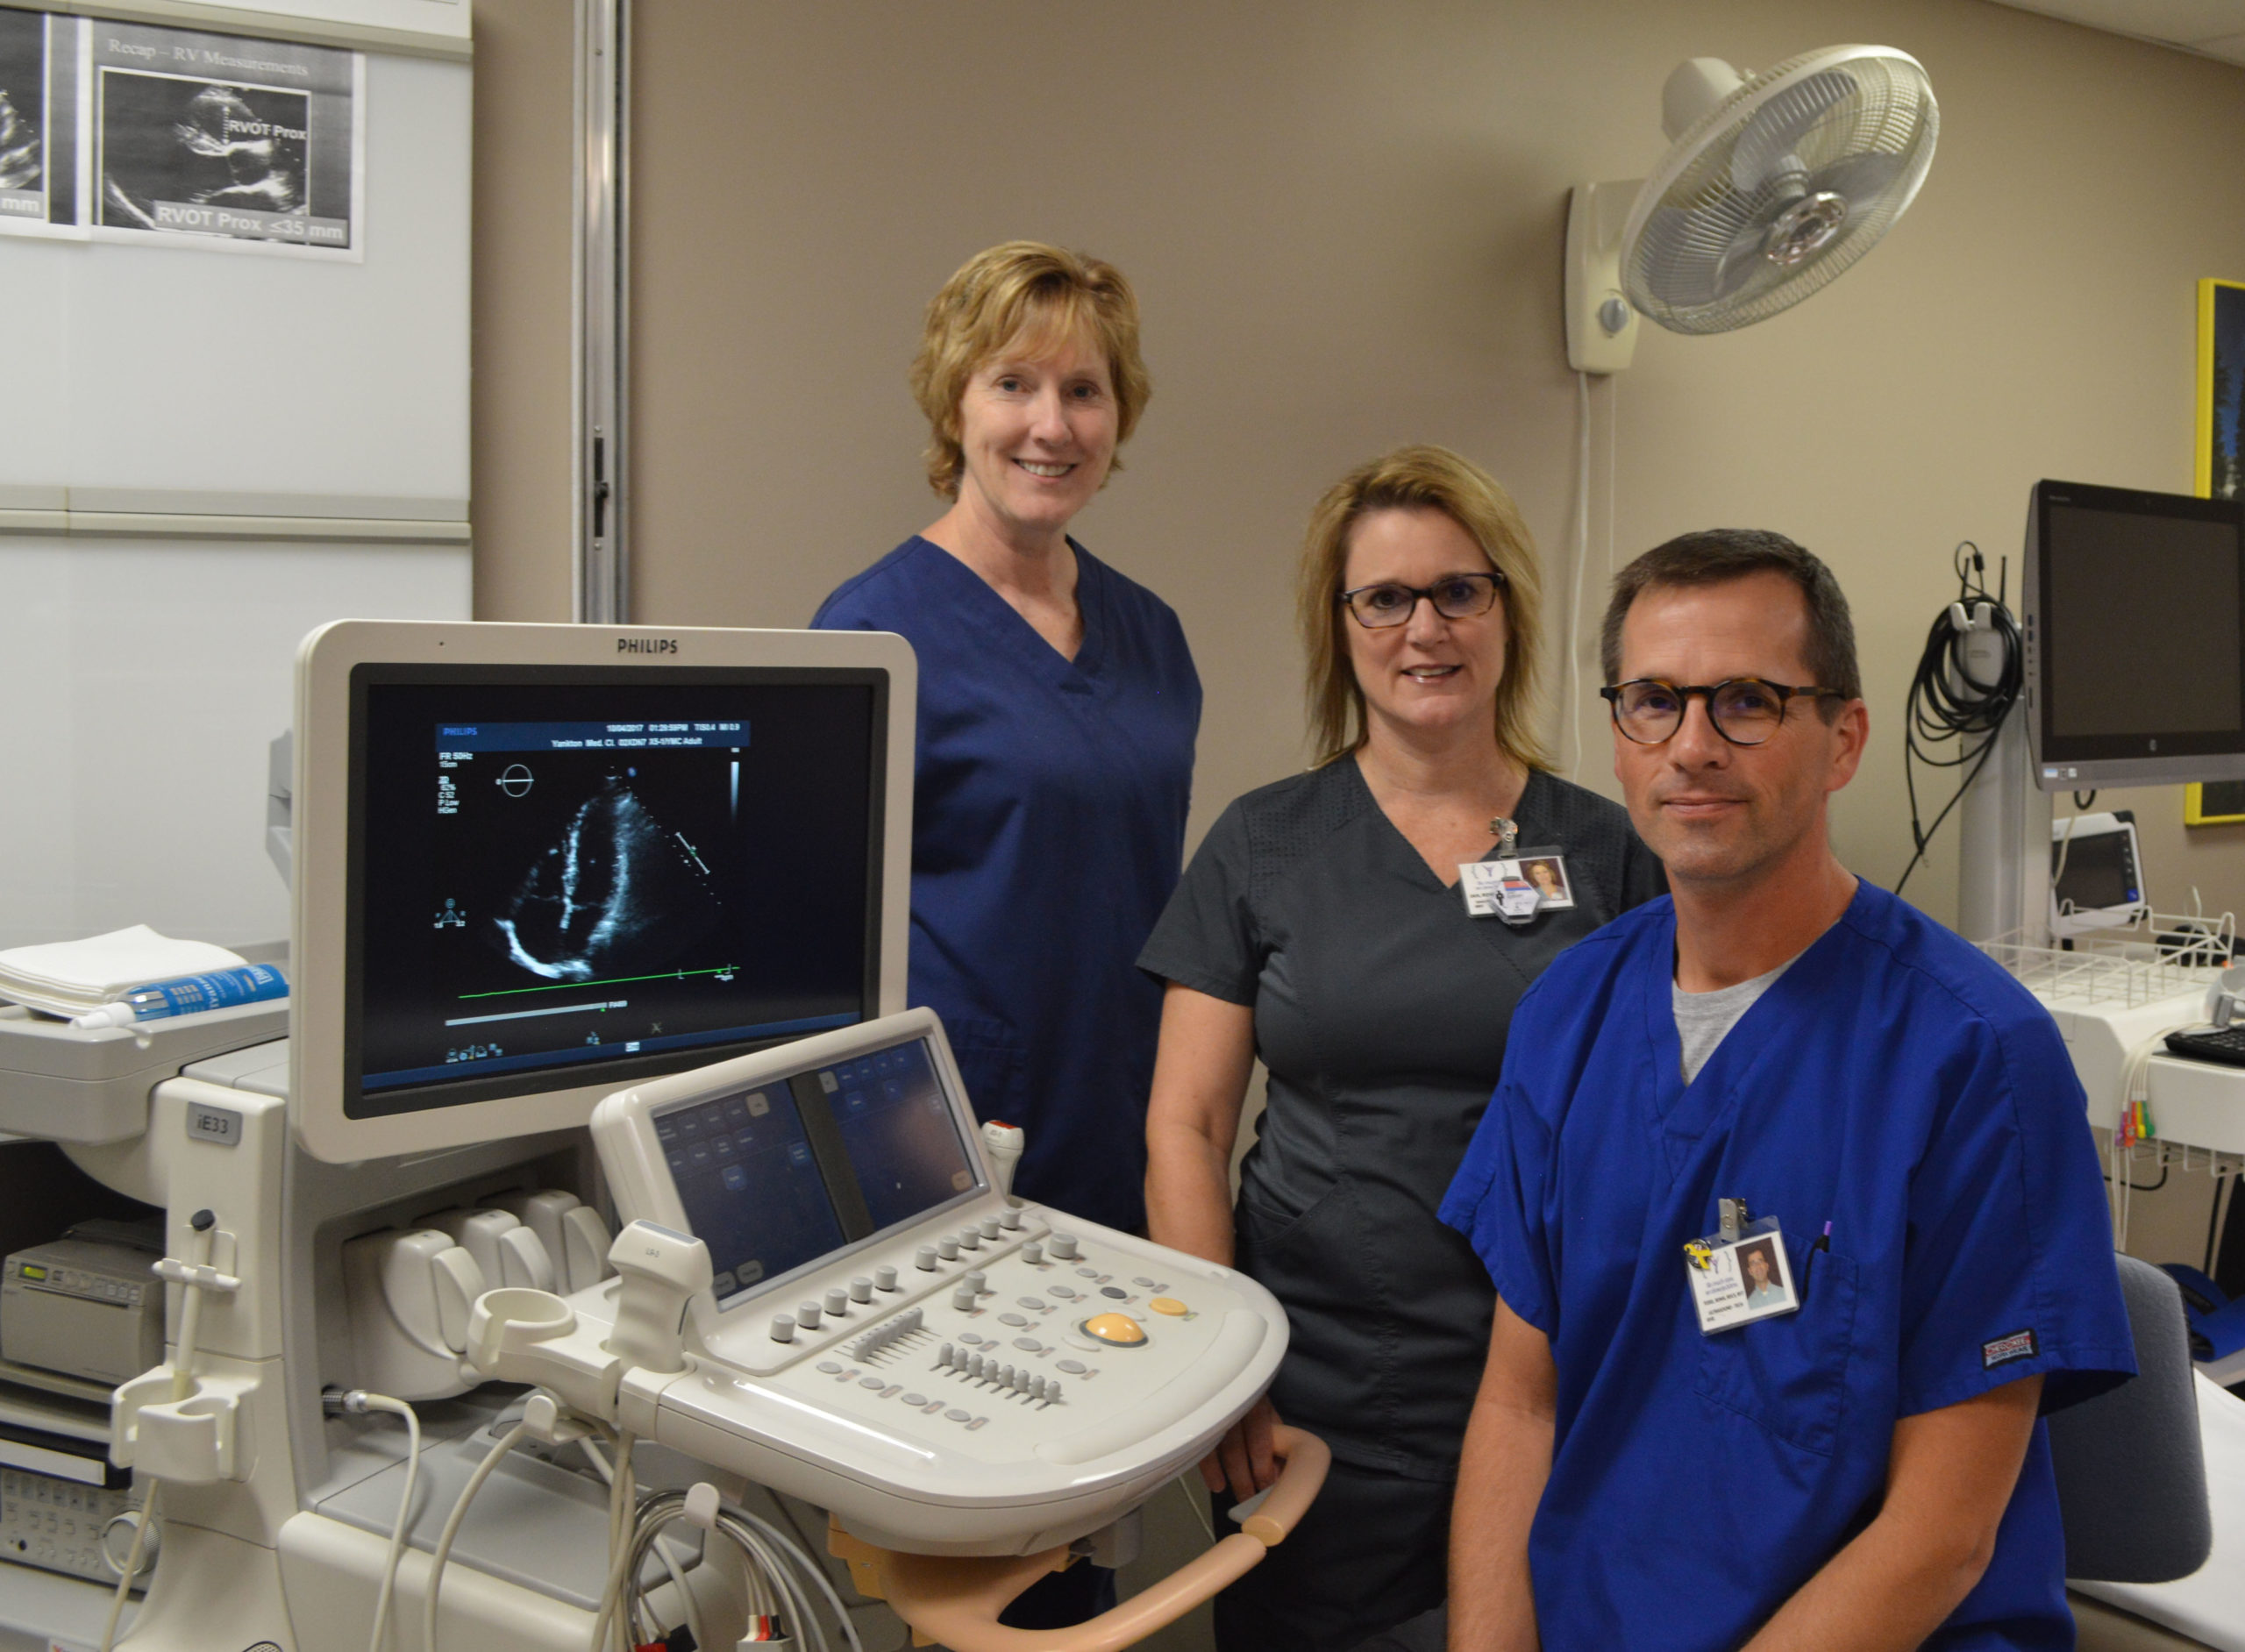 Echocardiology team Judy Van Heek, Jan Schrempp and Todd Langle.